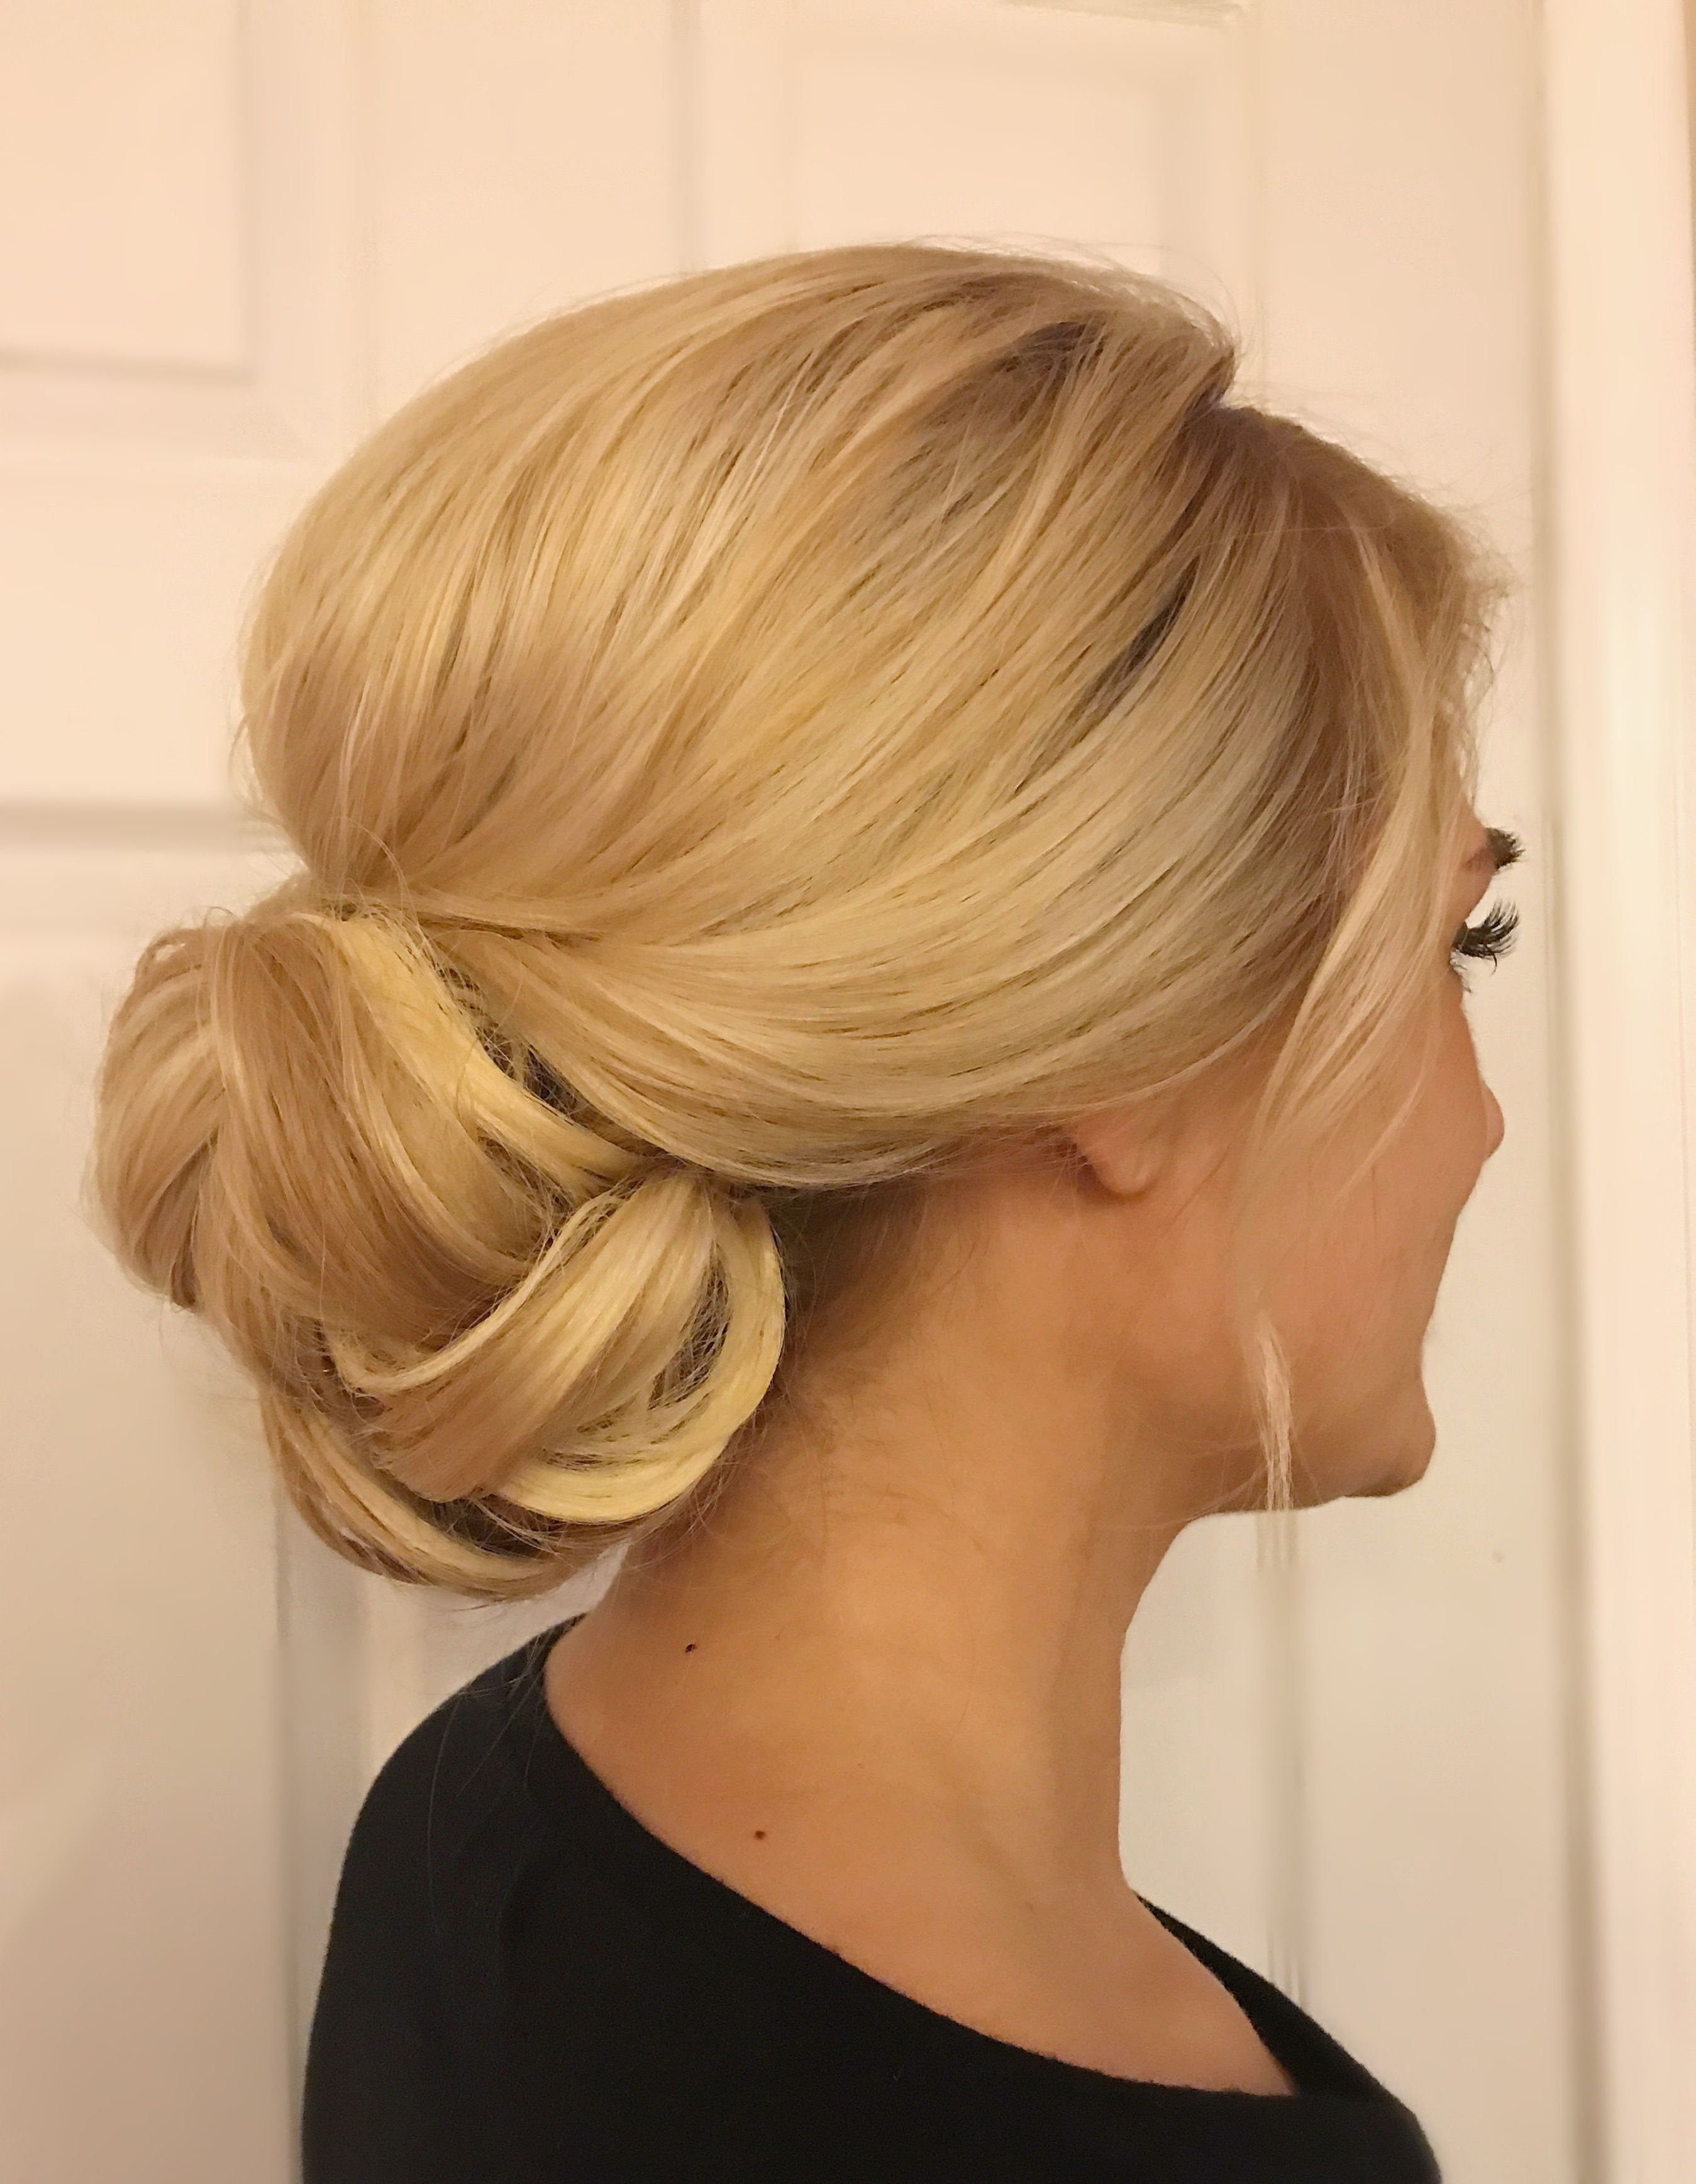 Widely Used Retro Wedding Hair Updos With Small Bouffant With Regard To Bridal Updo@shelbywhite Hmu, Low Bun, Wedding Hair (View 12 of 20)